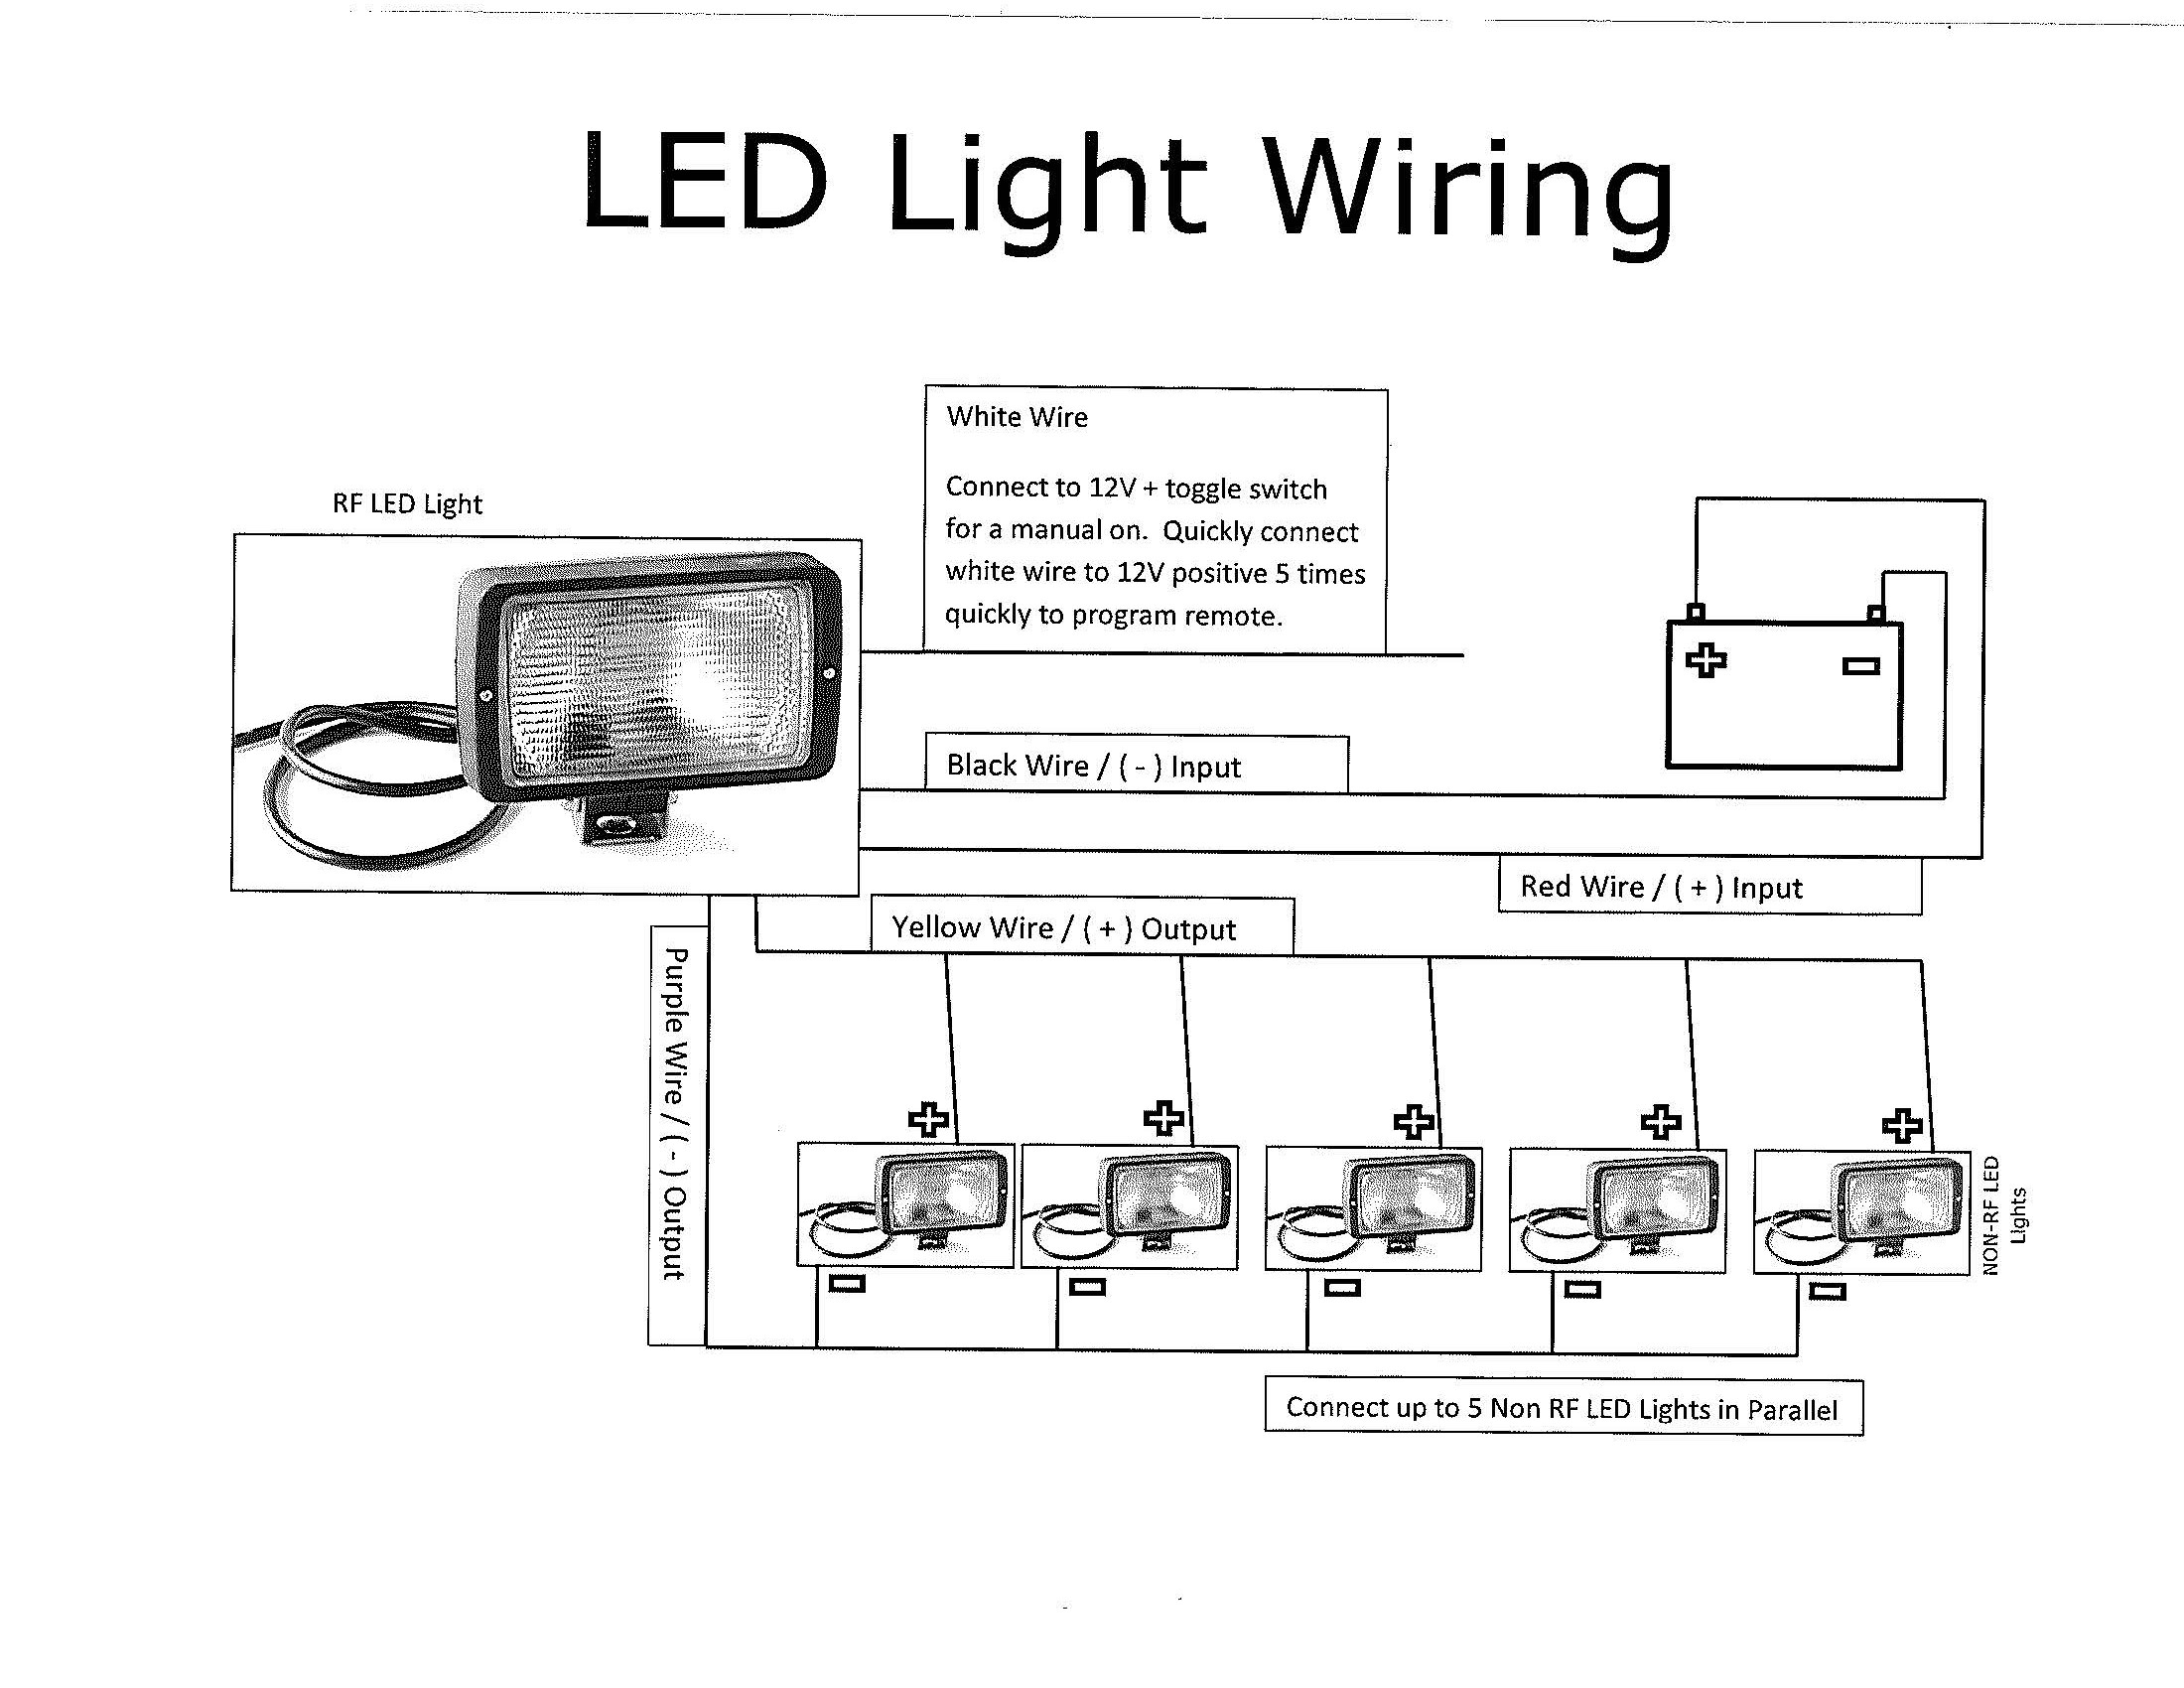 5 Wire Led Diagram | Wiring Diagram - Led Lighting Wiring Diagram